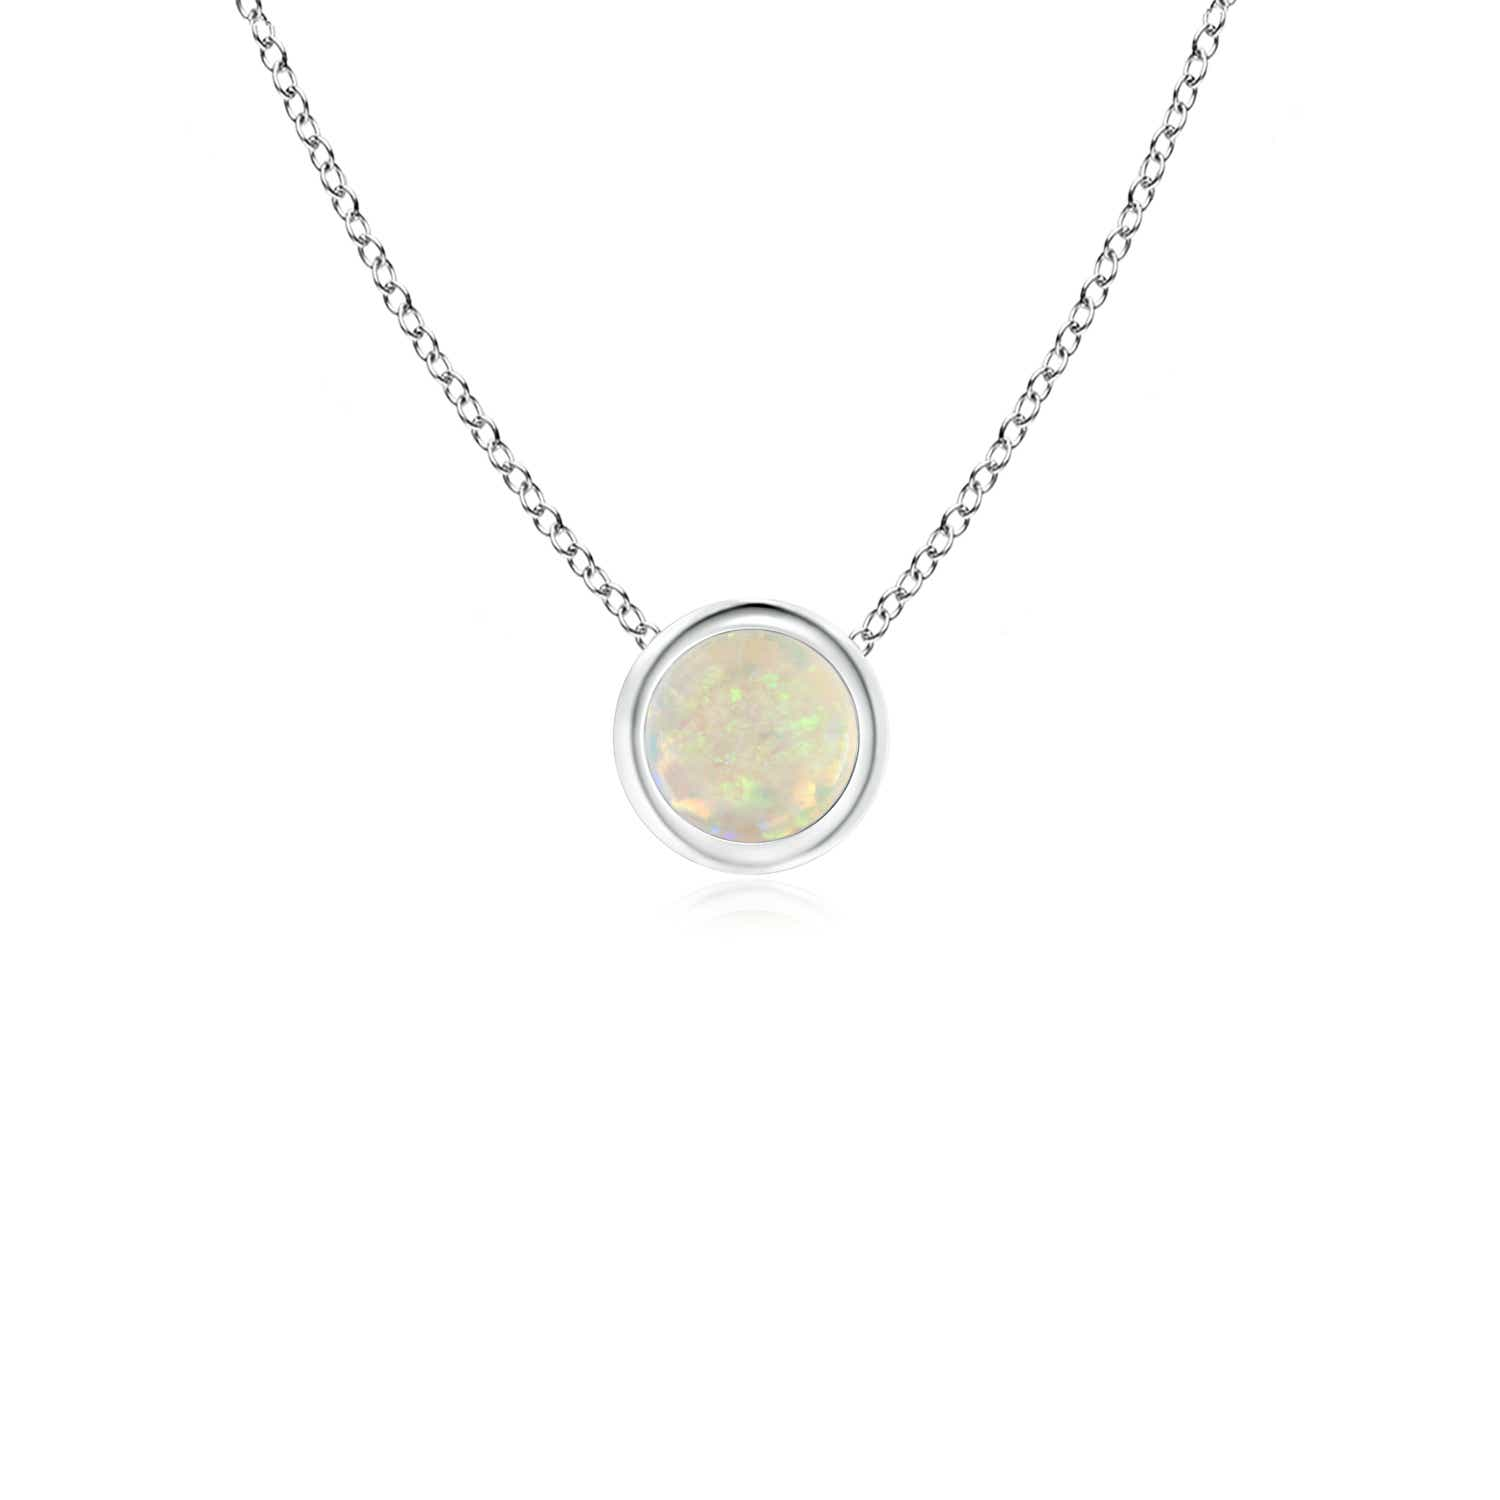 Bezel set round opal solitaire pendant necklace with 18 chain 14k bezel set round opal solitaire pendant necklace with aloadofball Image collections